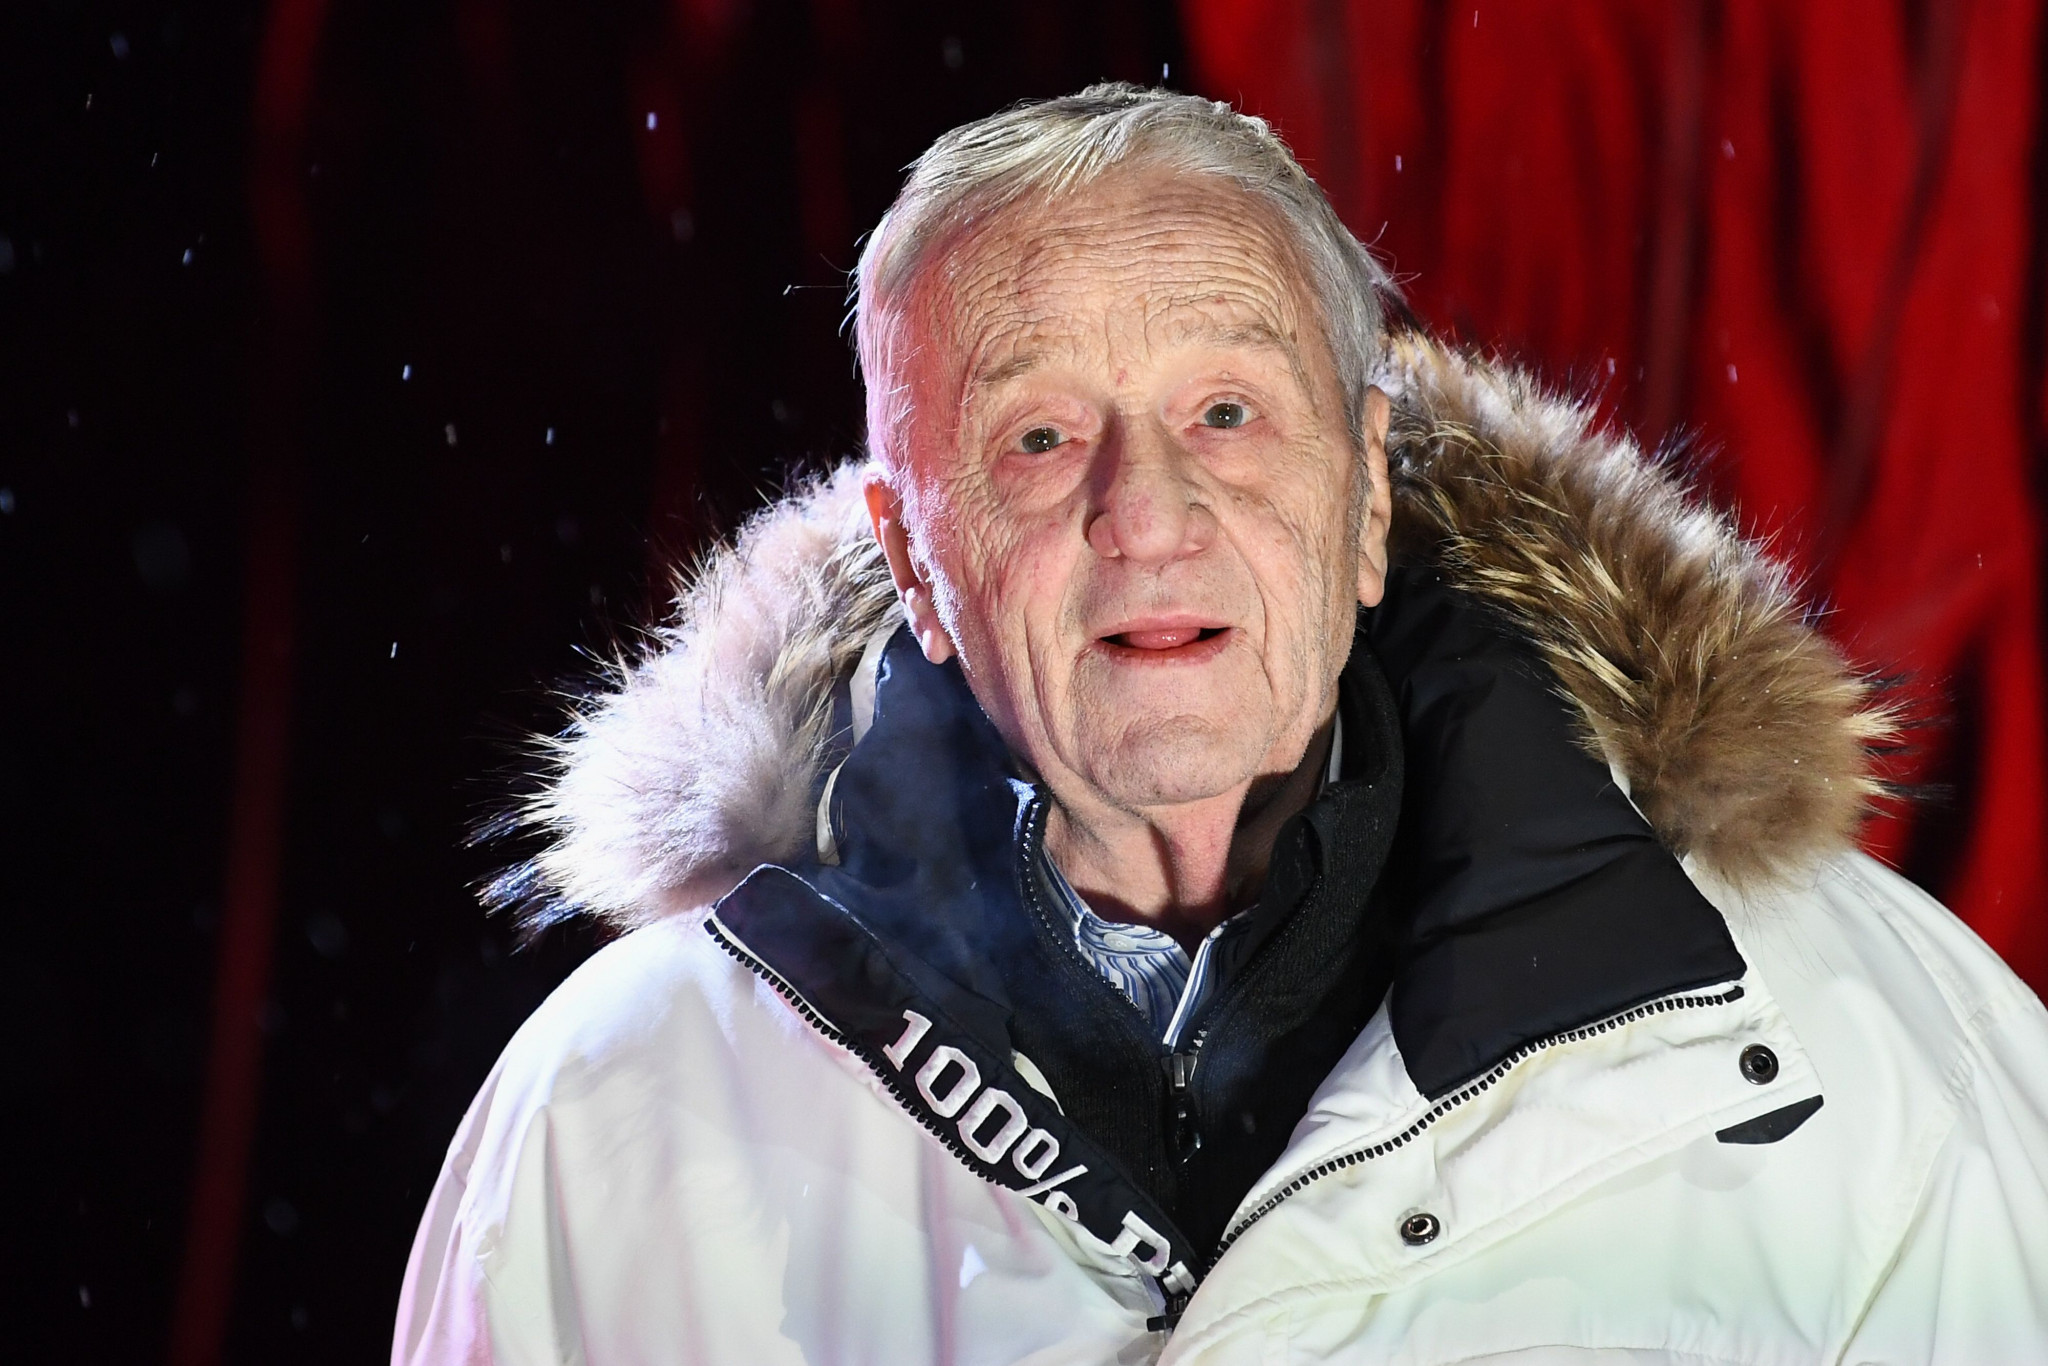 Gian-Franco Kasper was involved with the International Ski Federation for 46 years - 23 as general secretary and 23 as President, before stepping down last month ©Getty Images